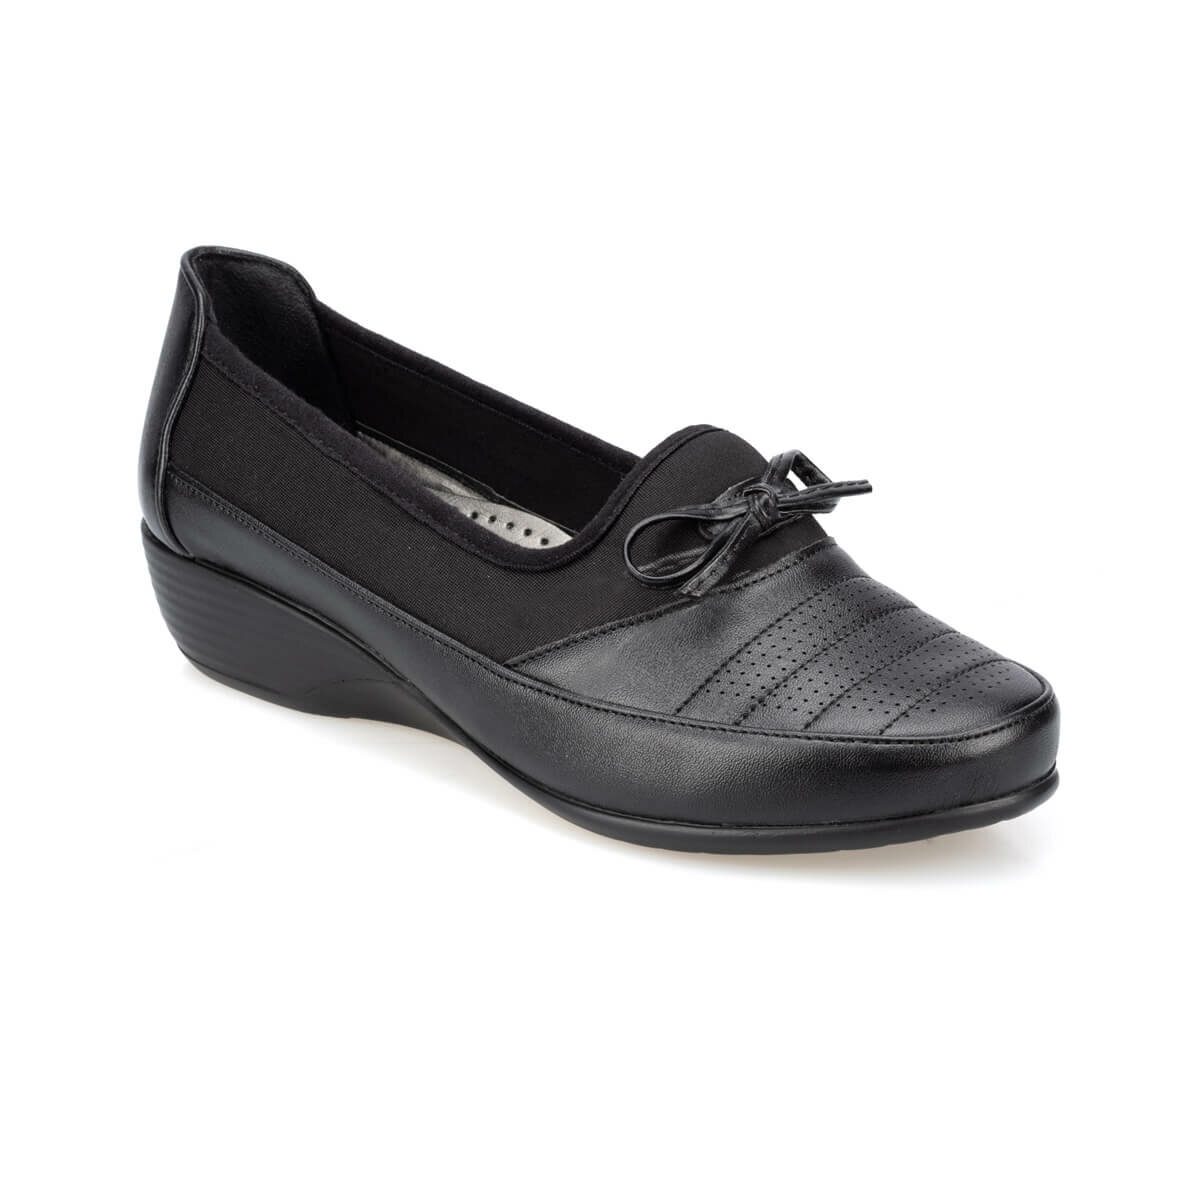 FLO 91.150690.Z Black Women Shoes Polaris